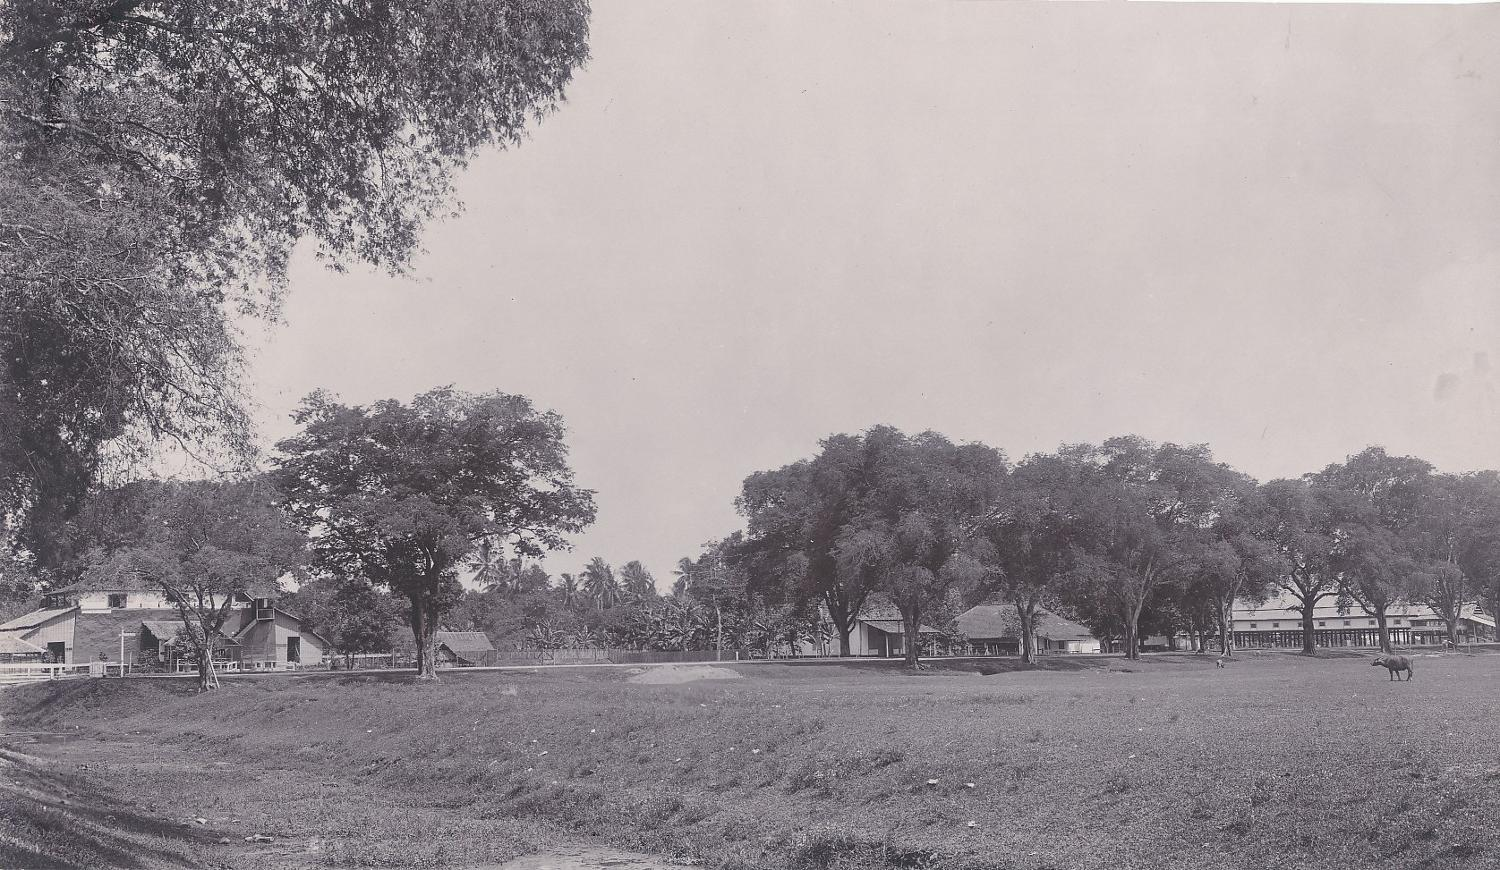 Village view in  Makassar Indonesia C1910